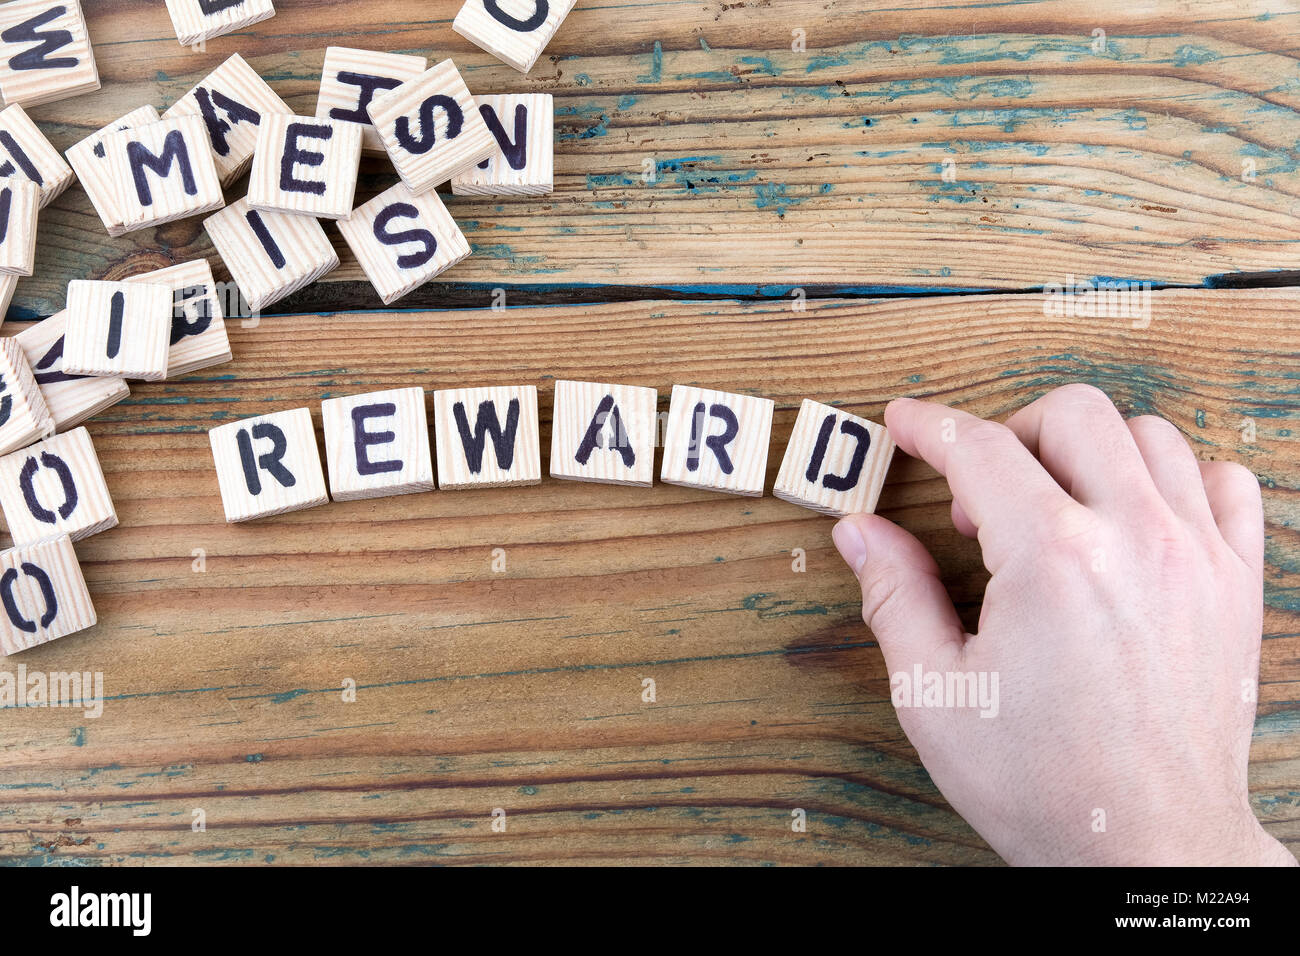 reward. Wooden letters on the office desk, informative and communication background - Stock Image